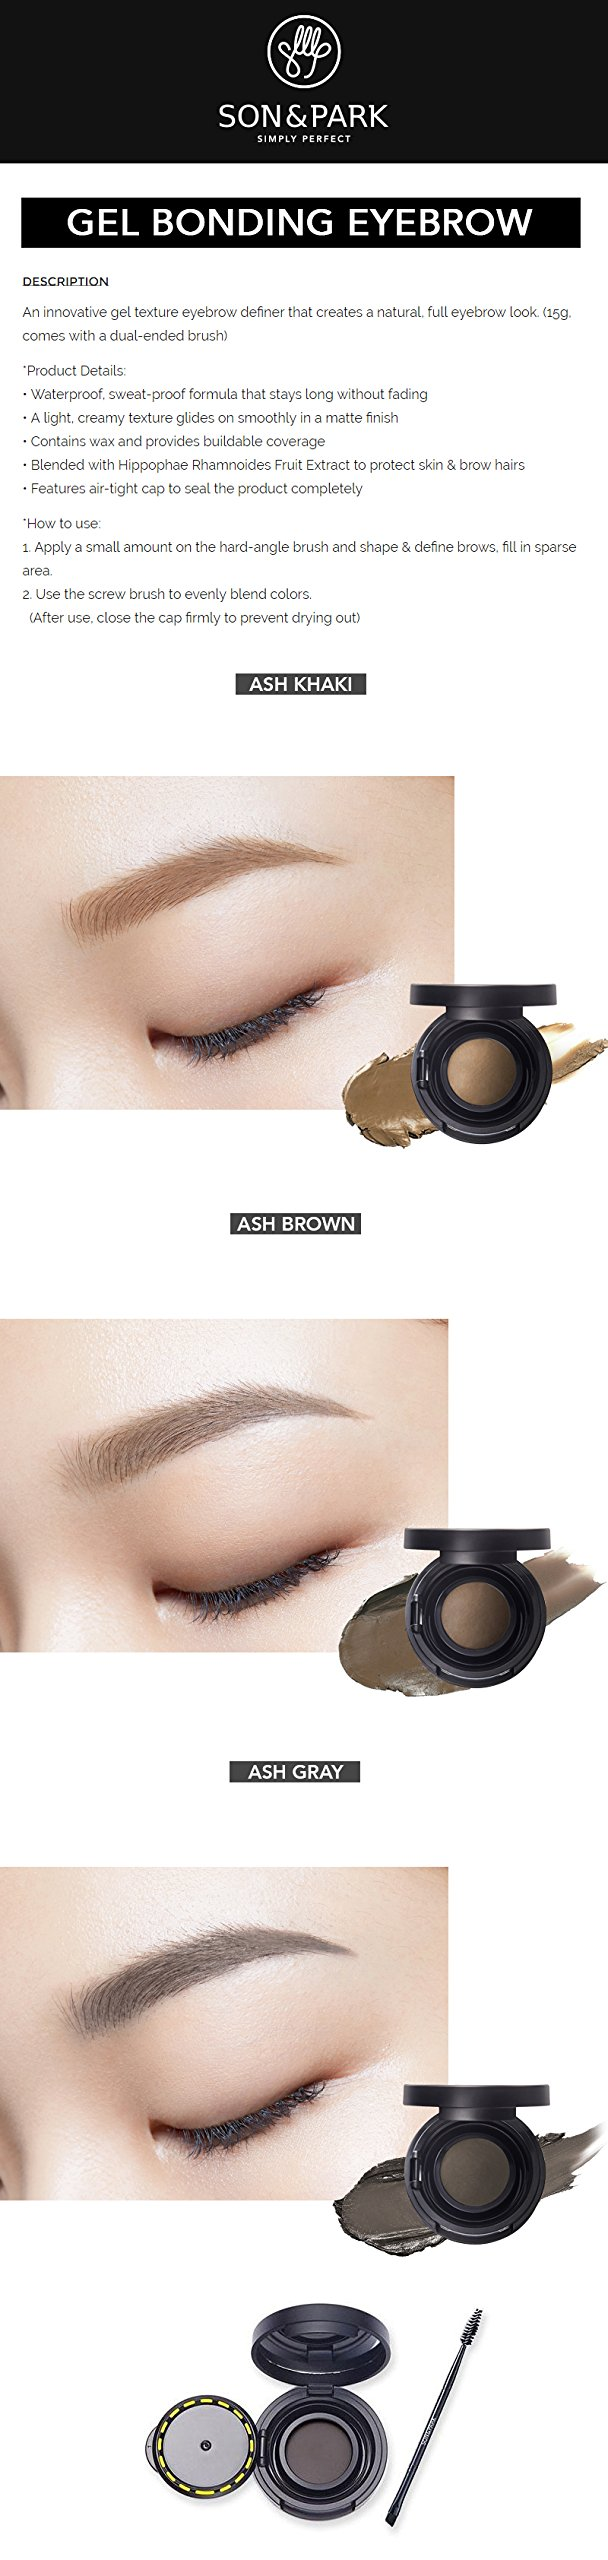 SONNPARK Gel bonging eyebrow 01 / Ash khaki color / Eyebrow / make up tools / korean beauty brand / SONNPARK / eye make up / Eye makeup tools / korean beauty cosmetic. An innovative gel texture eyebrow definer that creates a natural, full eyebrow look. Waterproof, sweat-proof formula that stays long without fading.